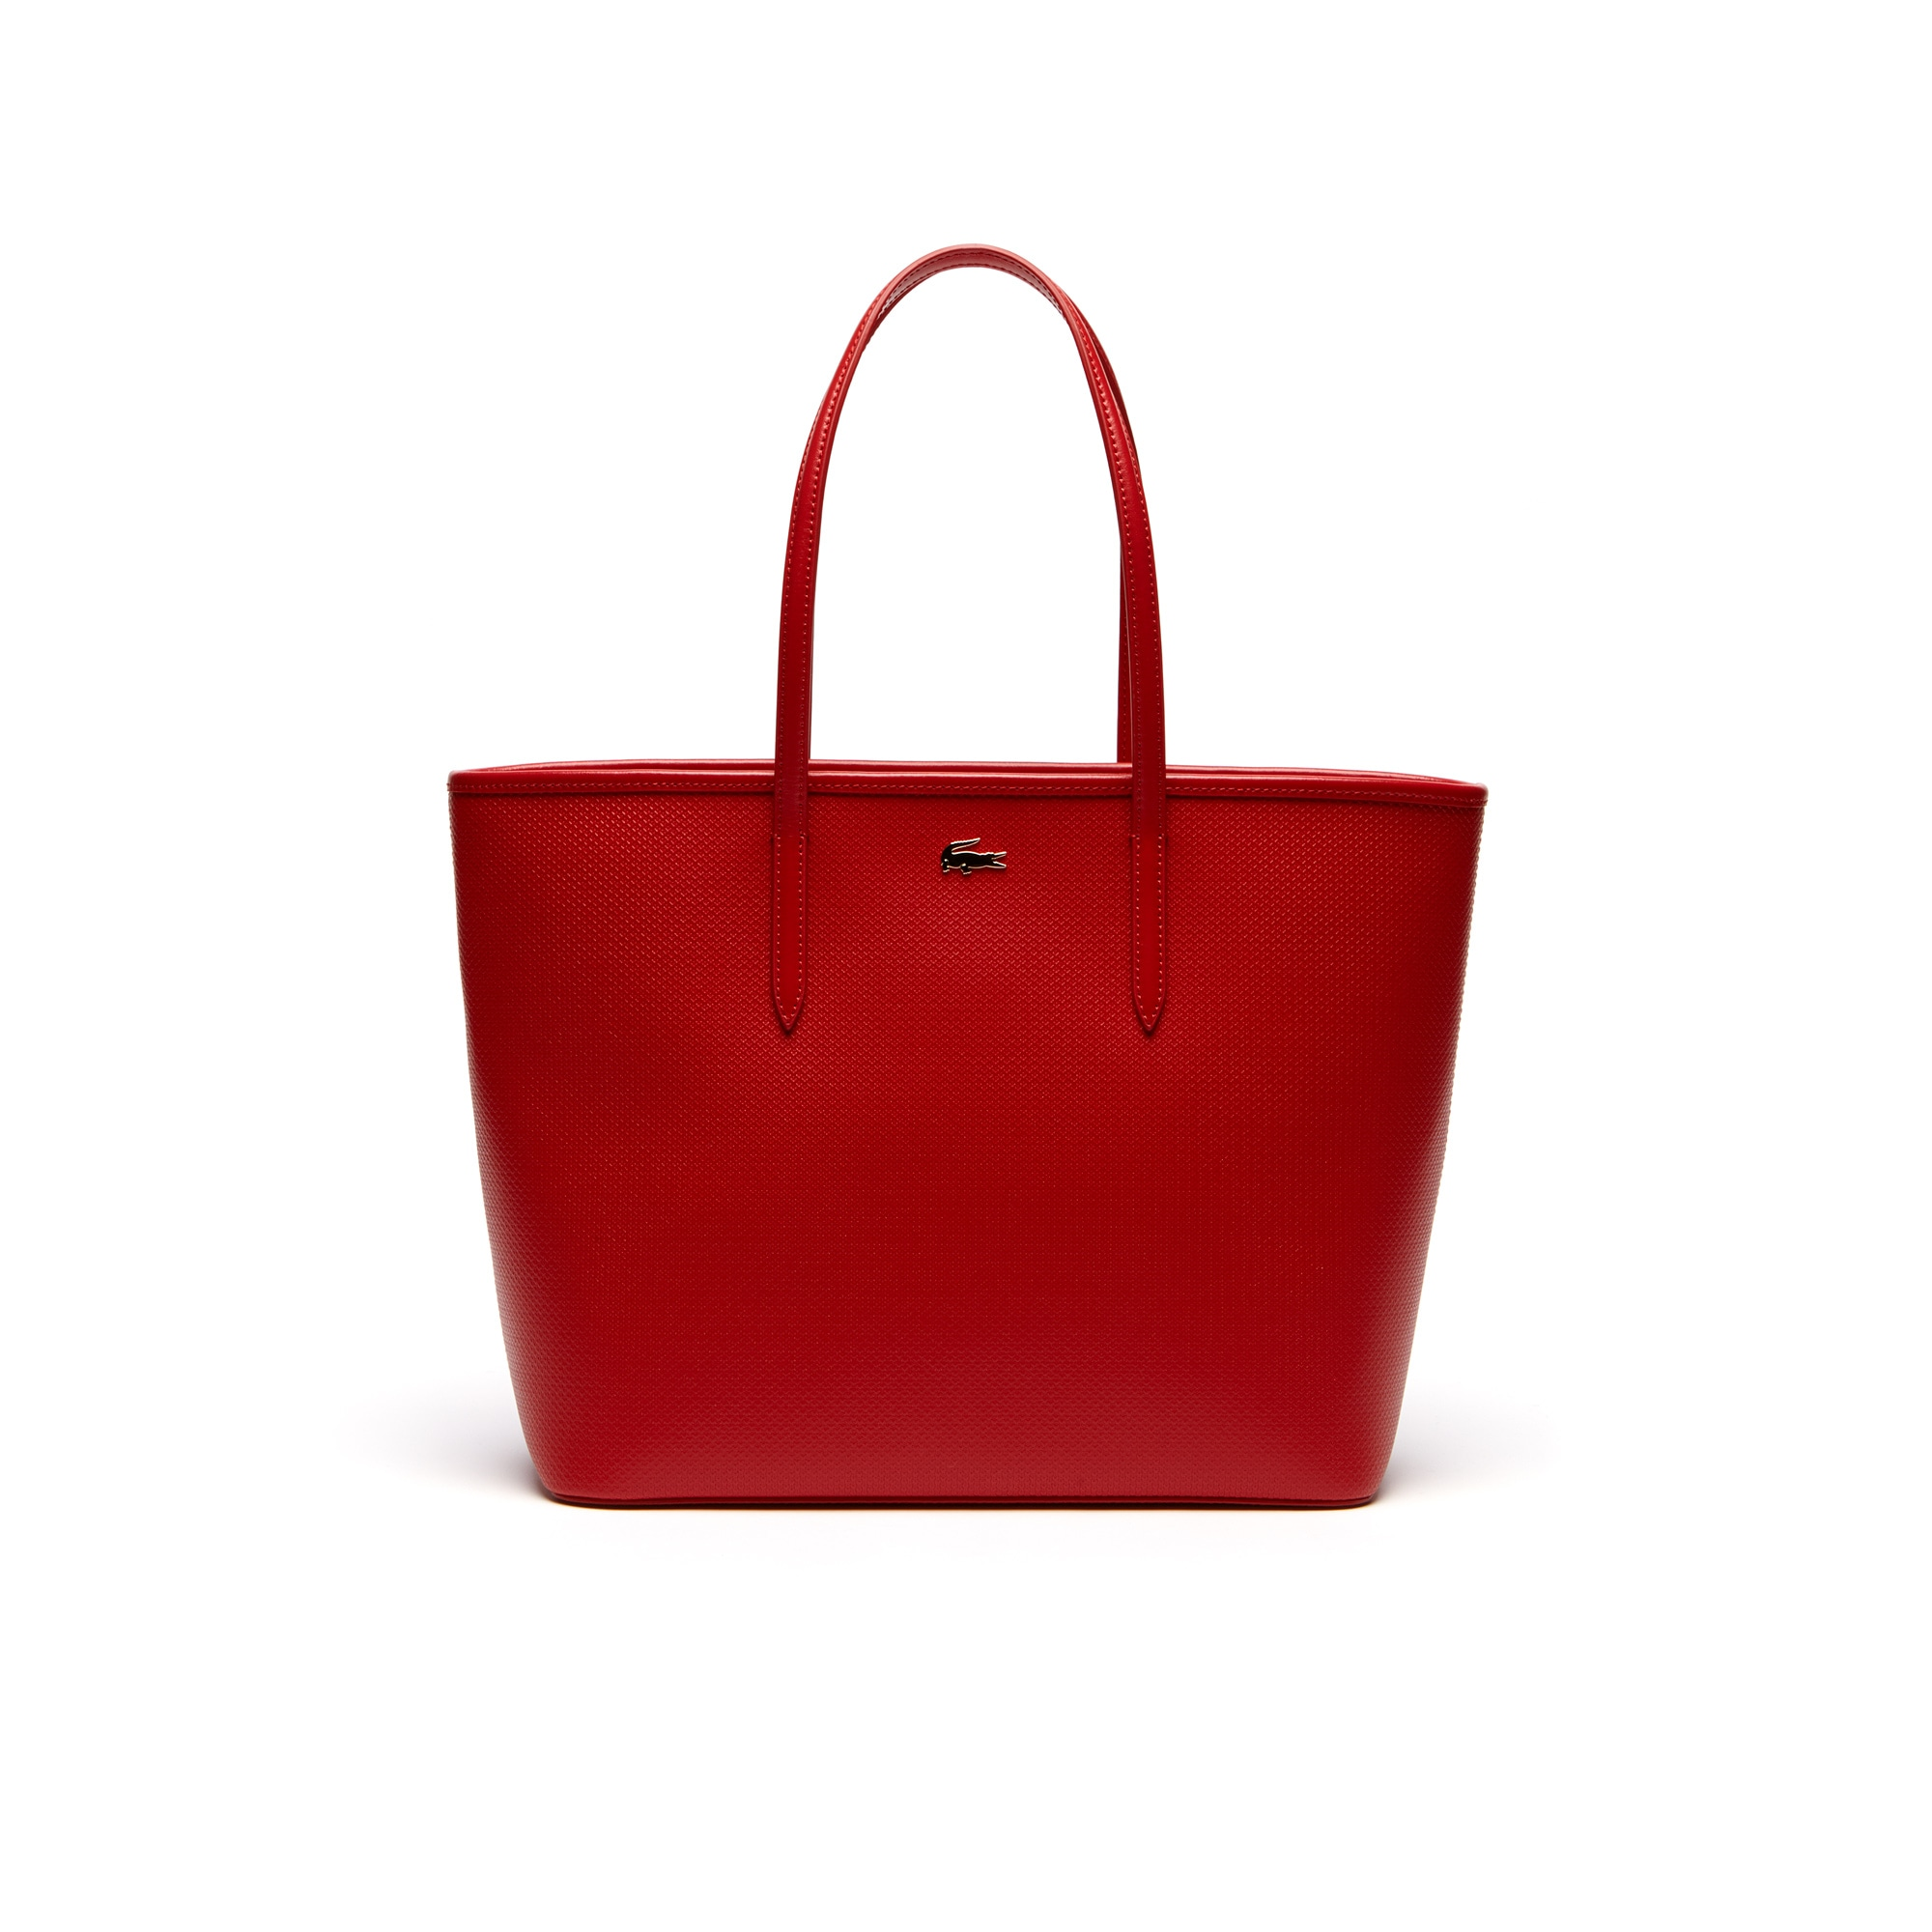 Chantaco zip tote bag in leather